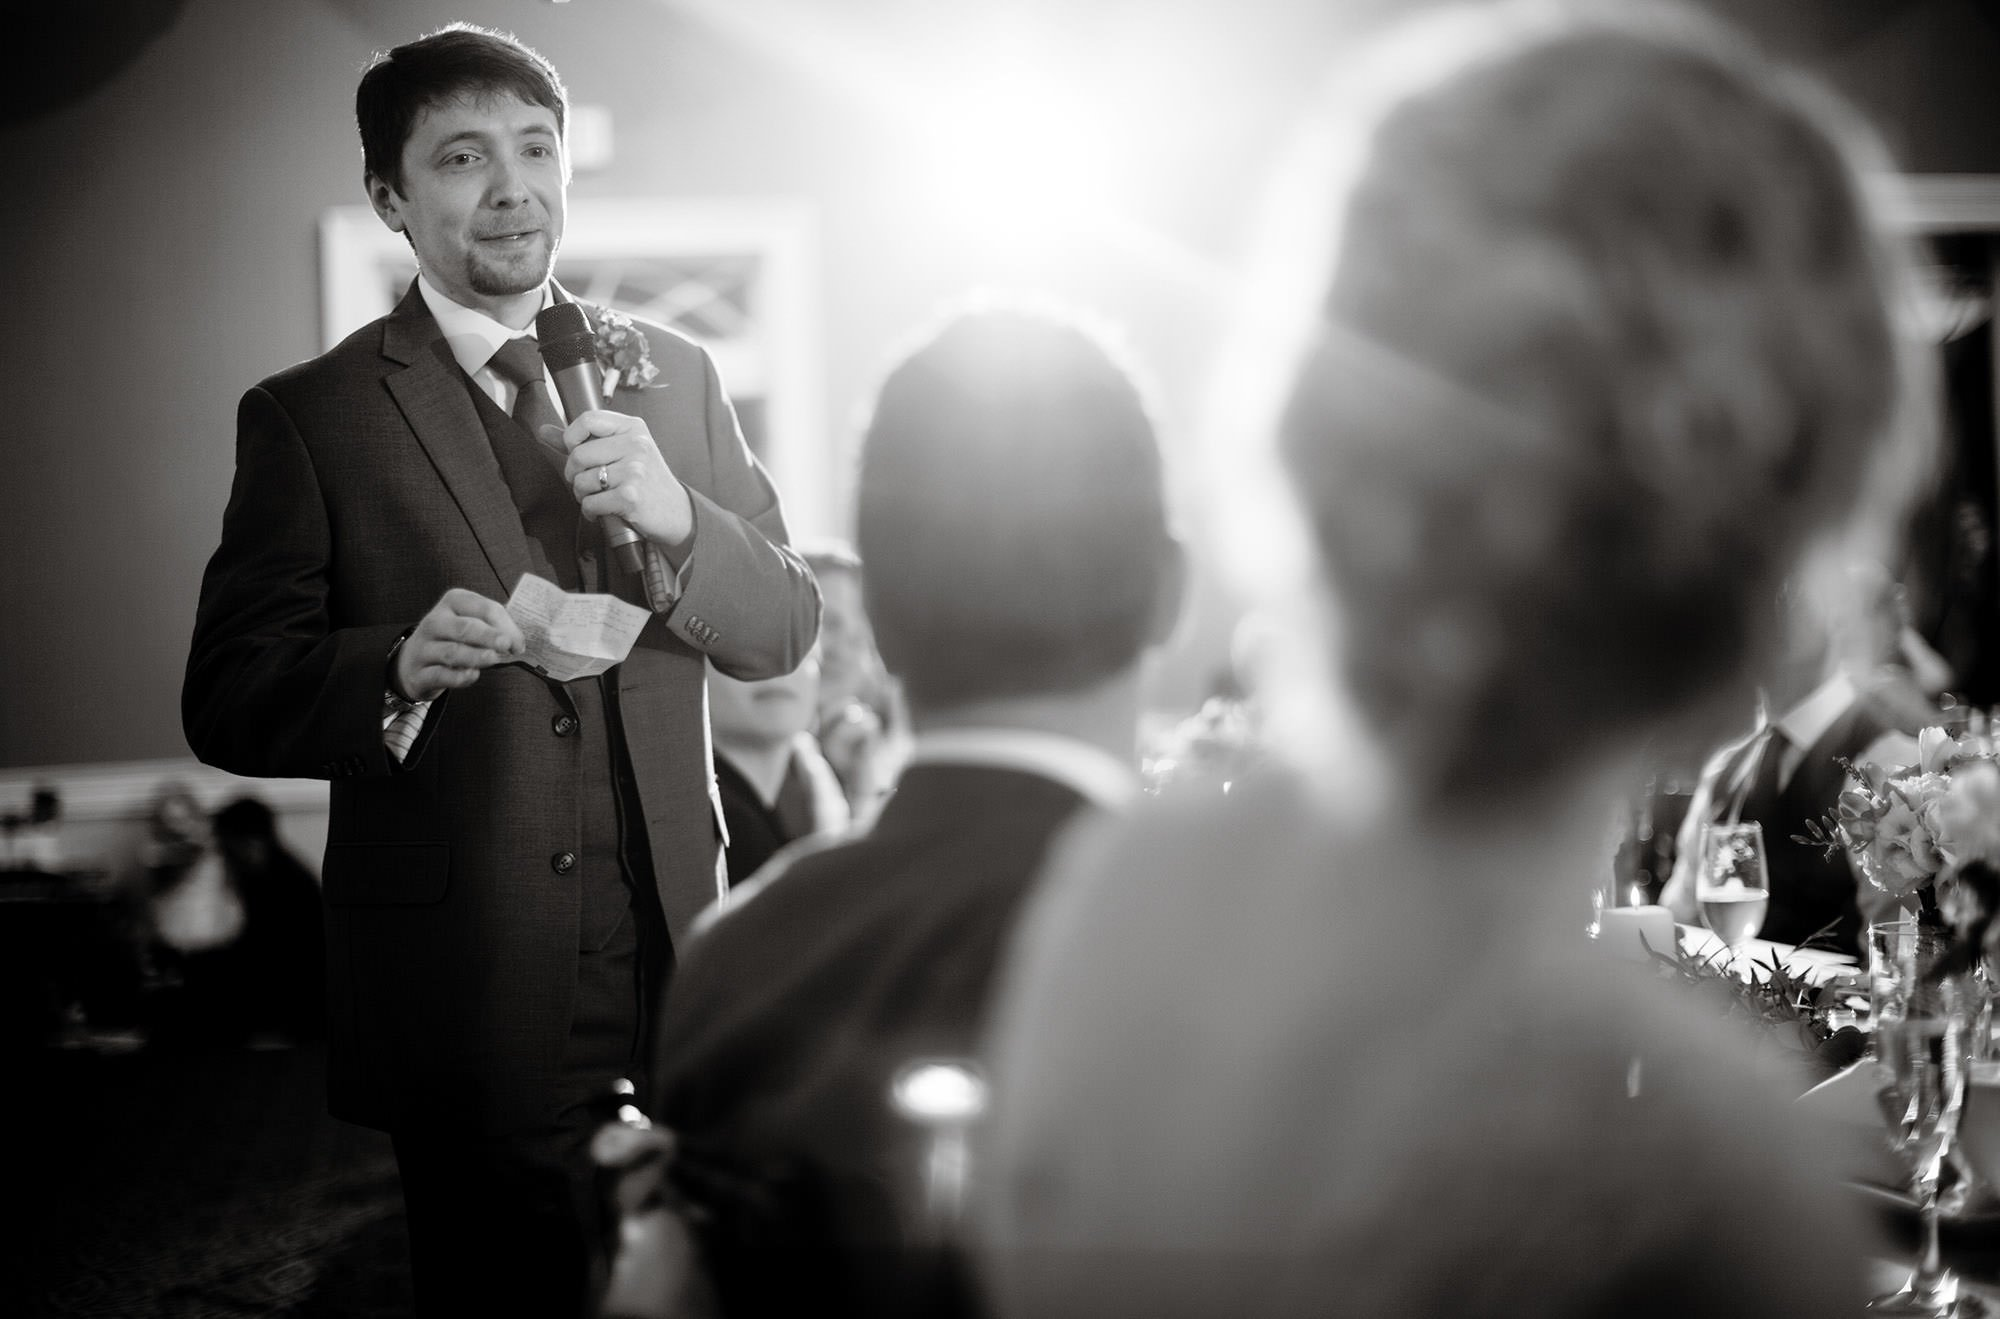 The best man gives a toast during the reception at Tidewater Inn.